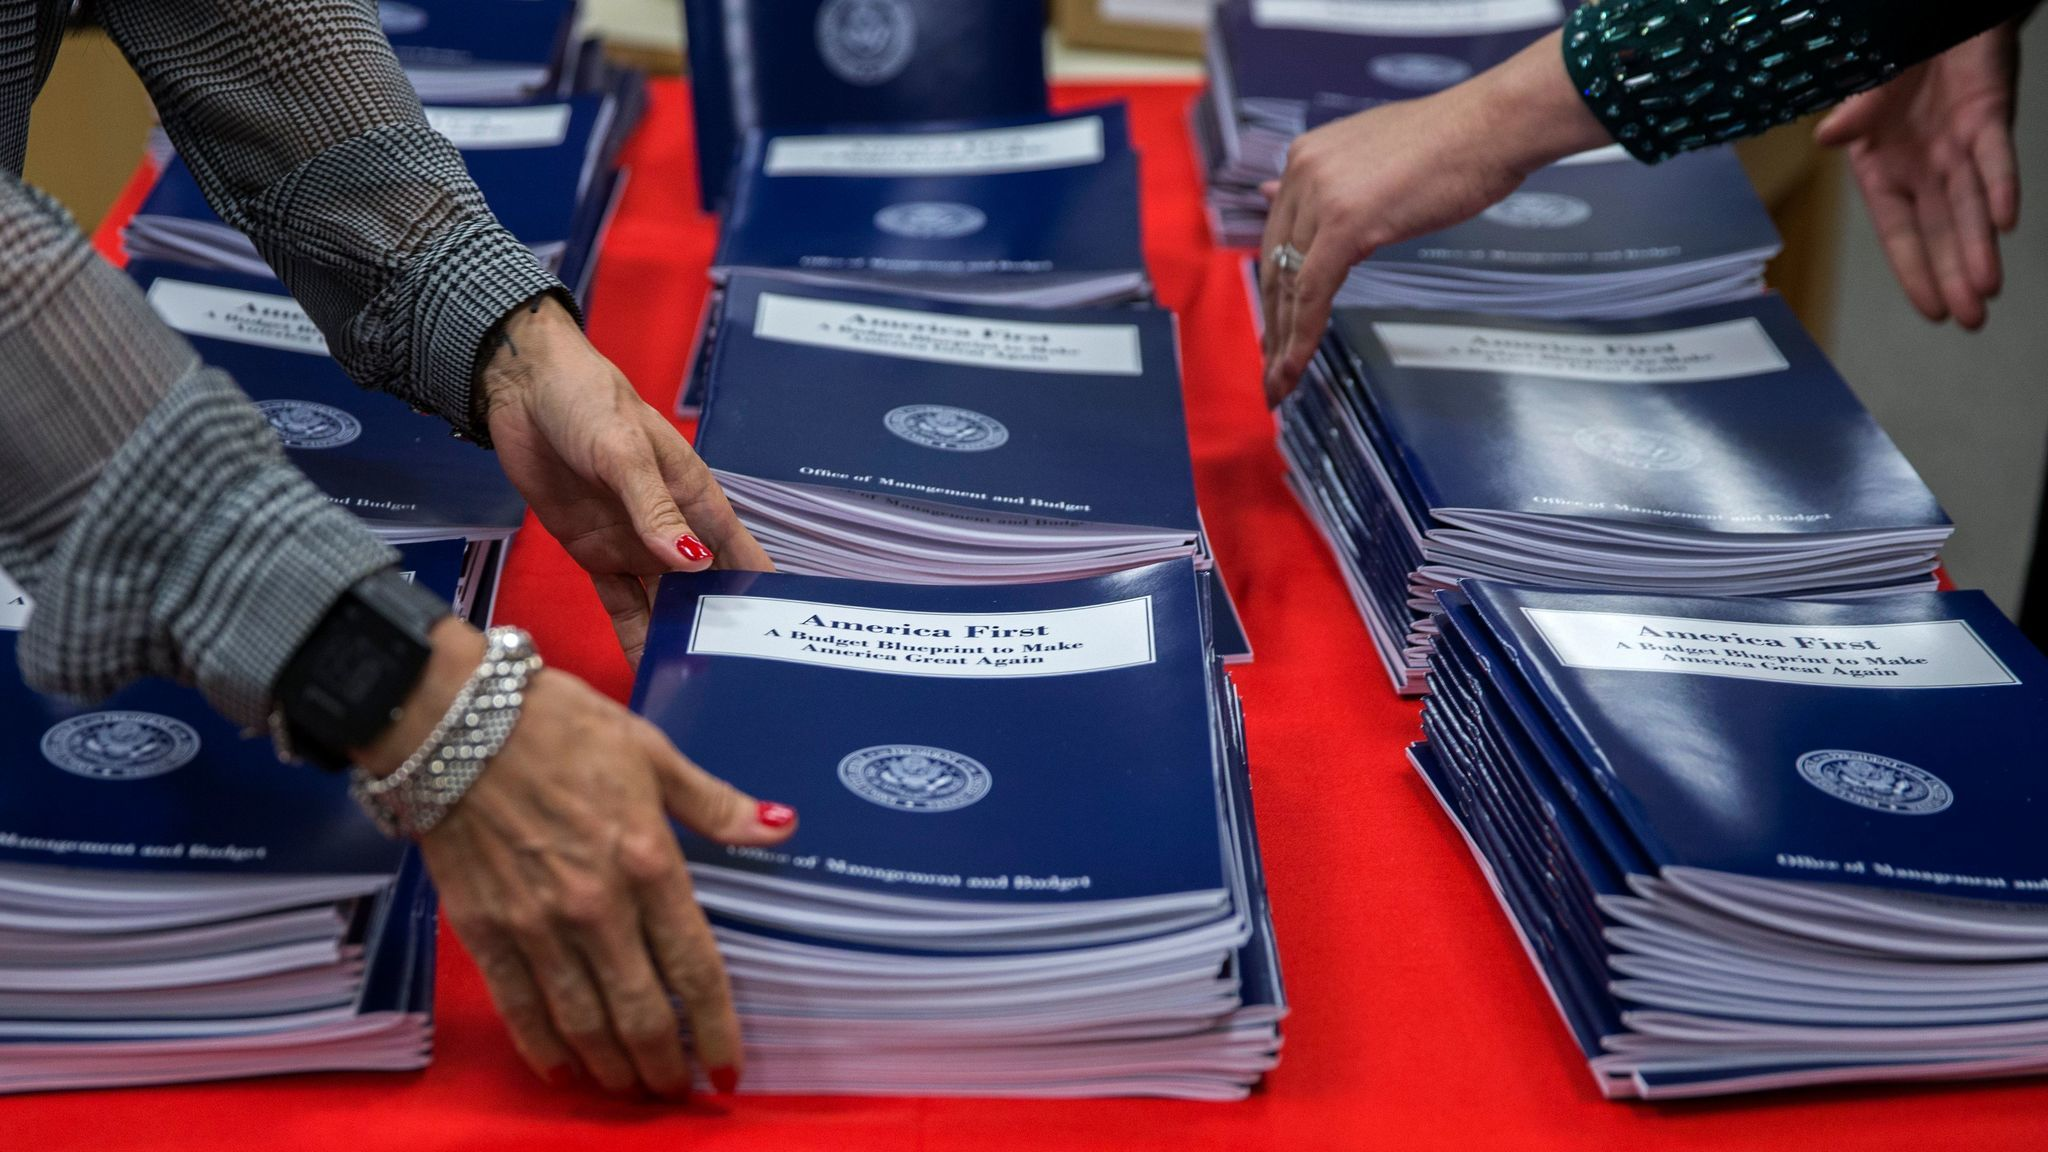 Copies of President Trump's America First budget at the Government Publishing Officebookstore in Washington, D.C.